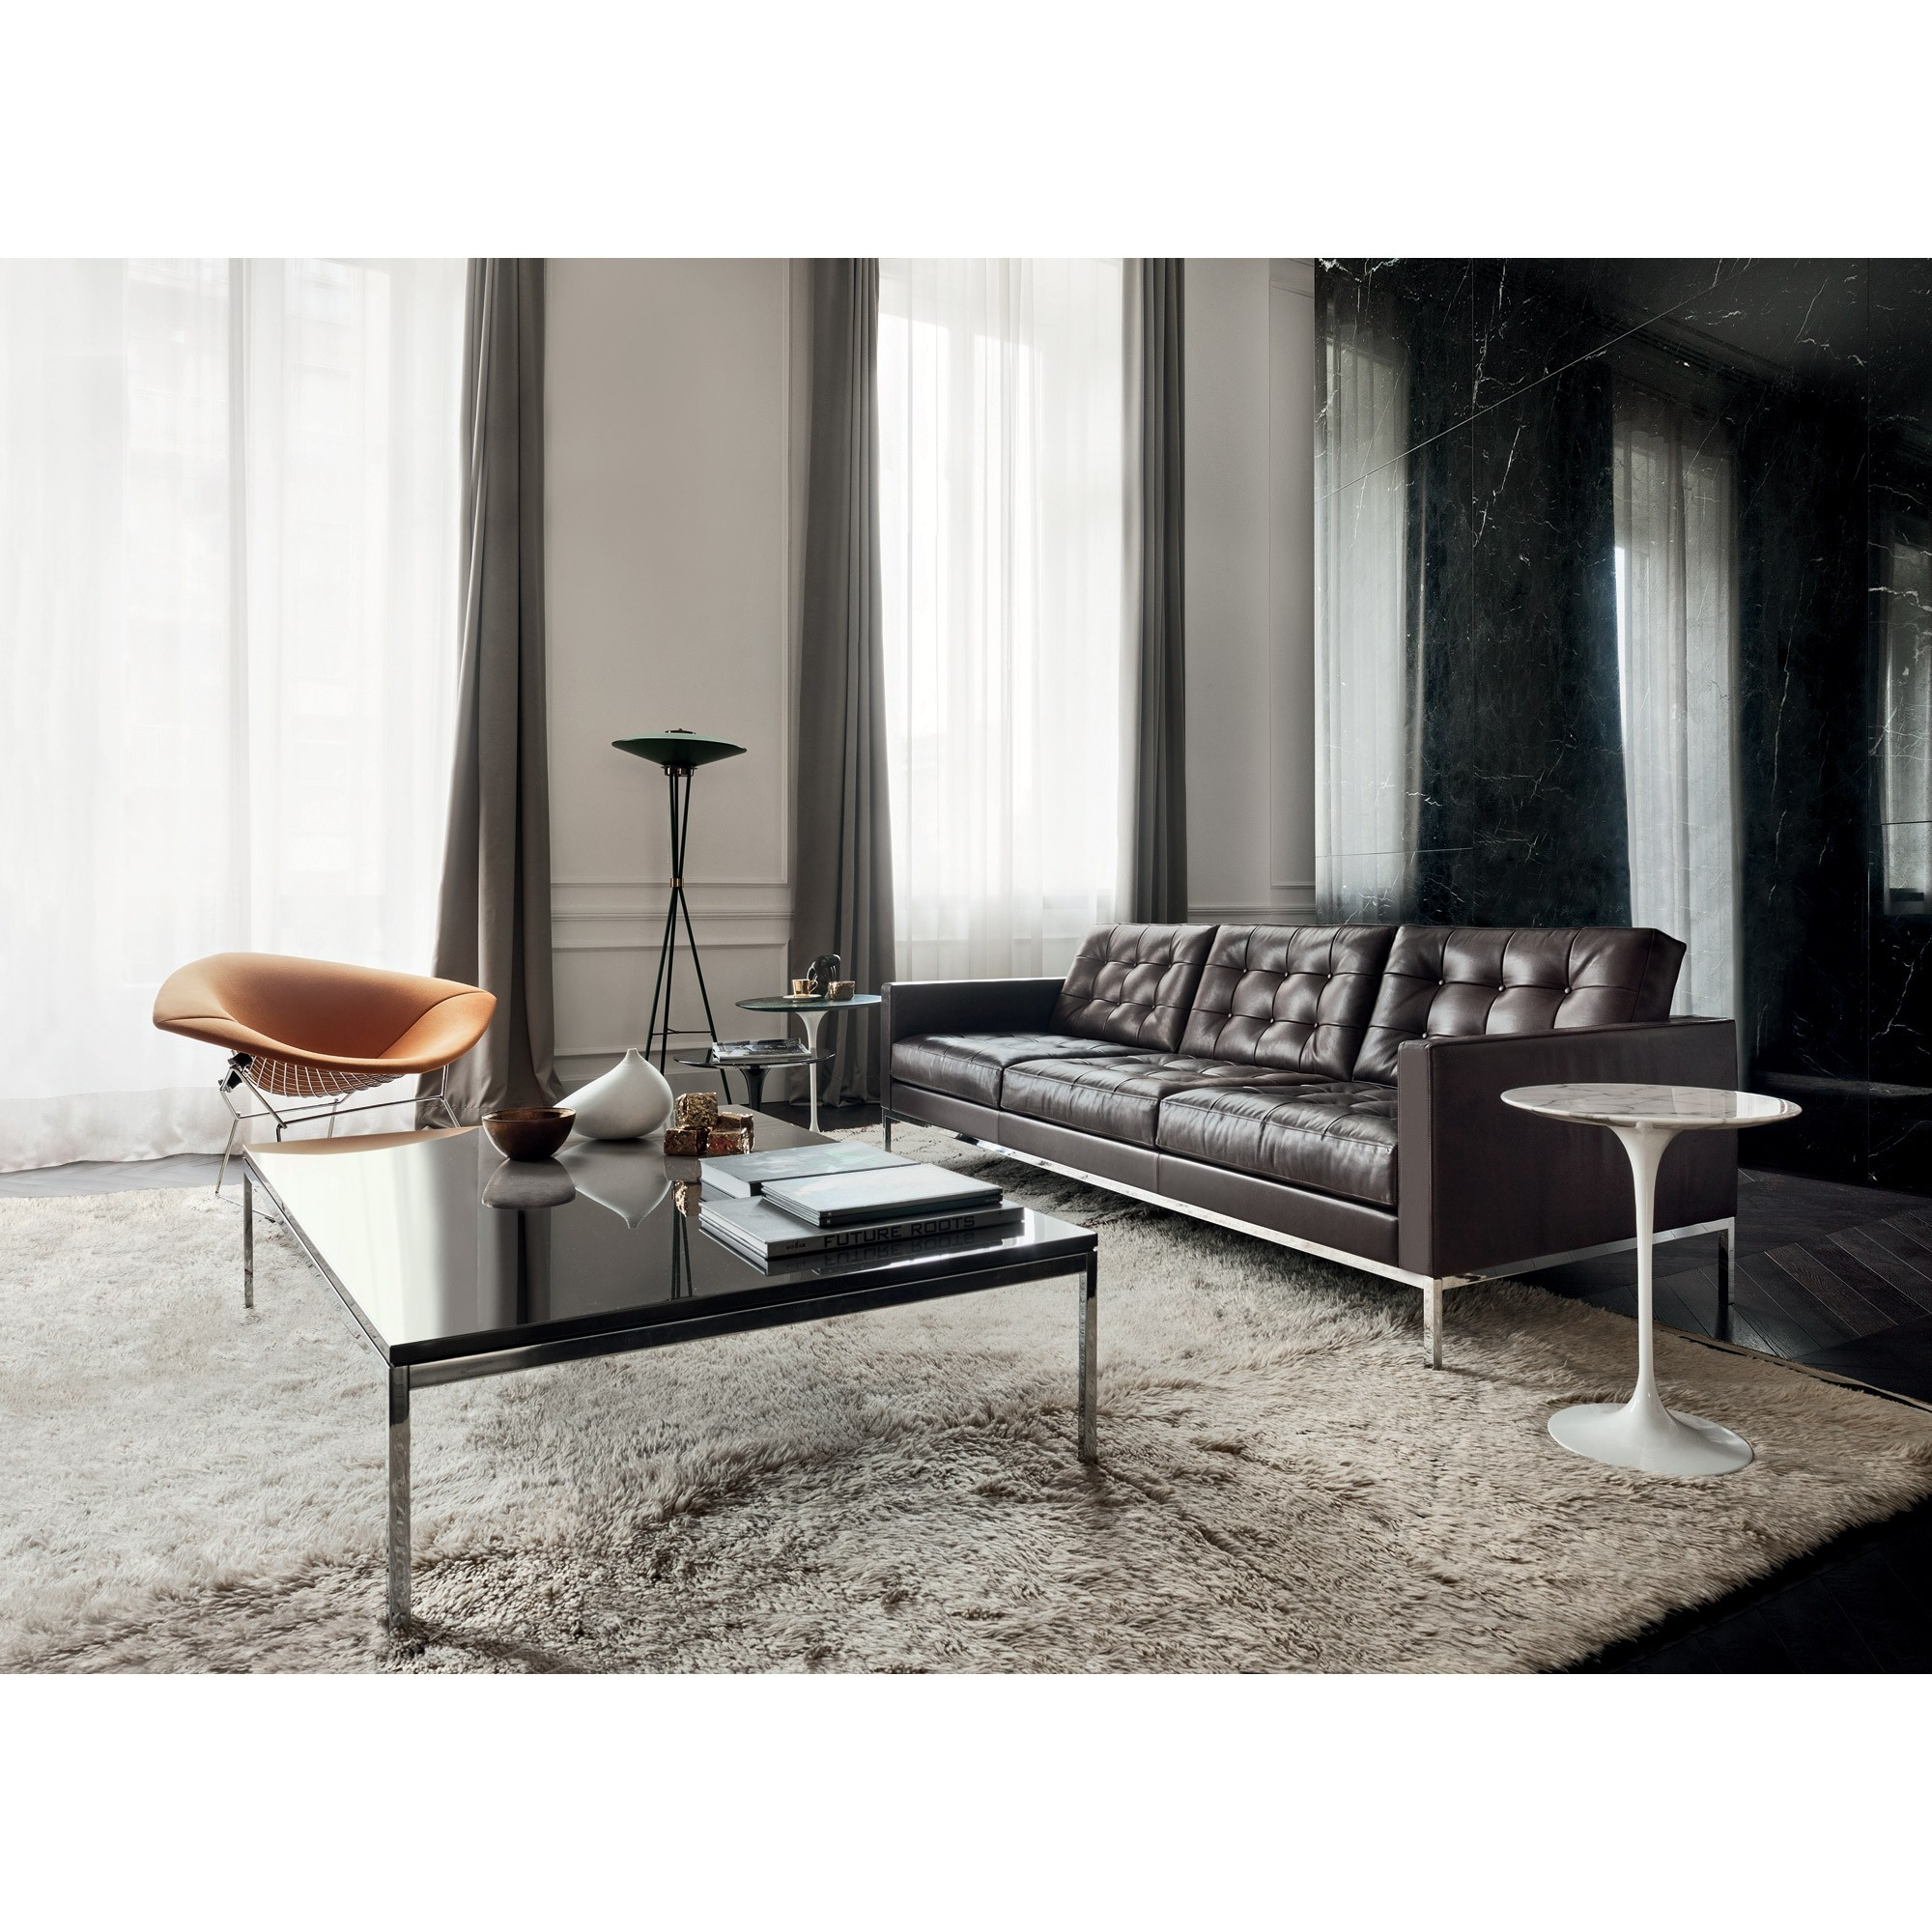 Natuzzi Editions Florence Leather Sofa Reviews Rs Gold Sofa Within Florence Knoll Leather Sofas (Image 8 of 15)